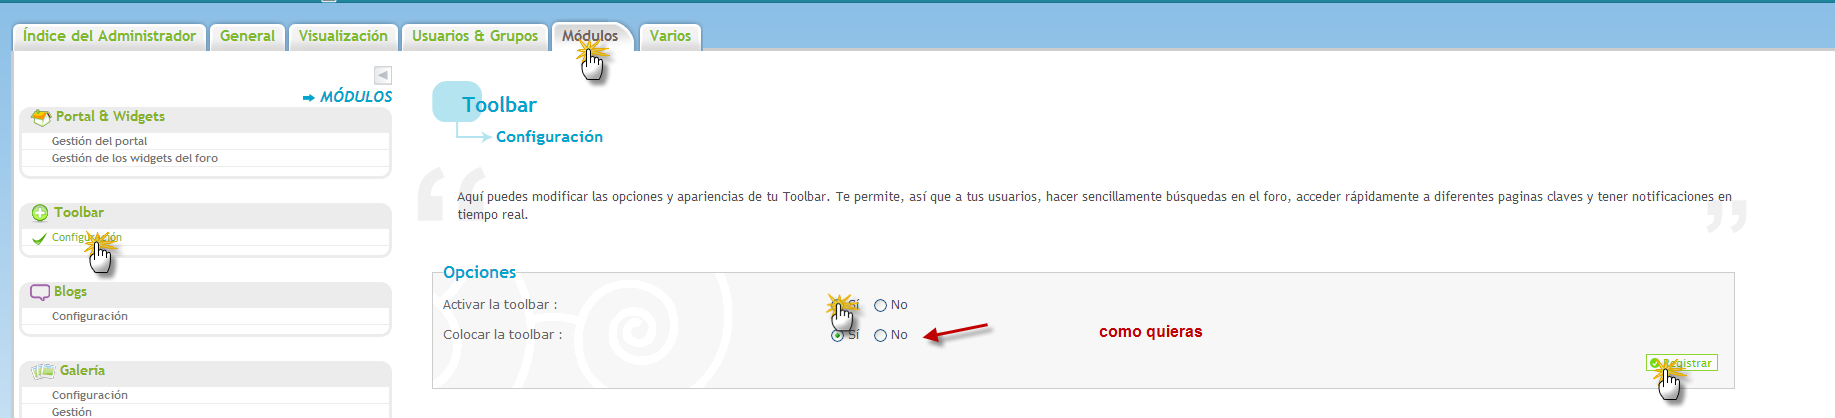 Toolbar y notificaciones : ¿Como funcionan? 30010